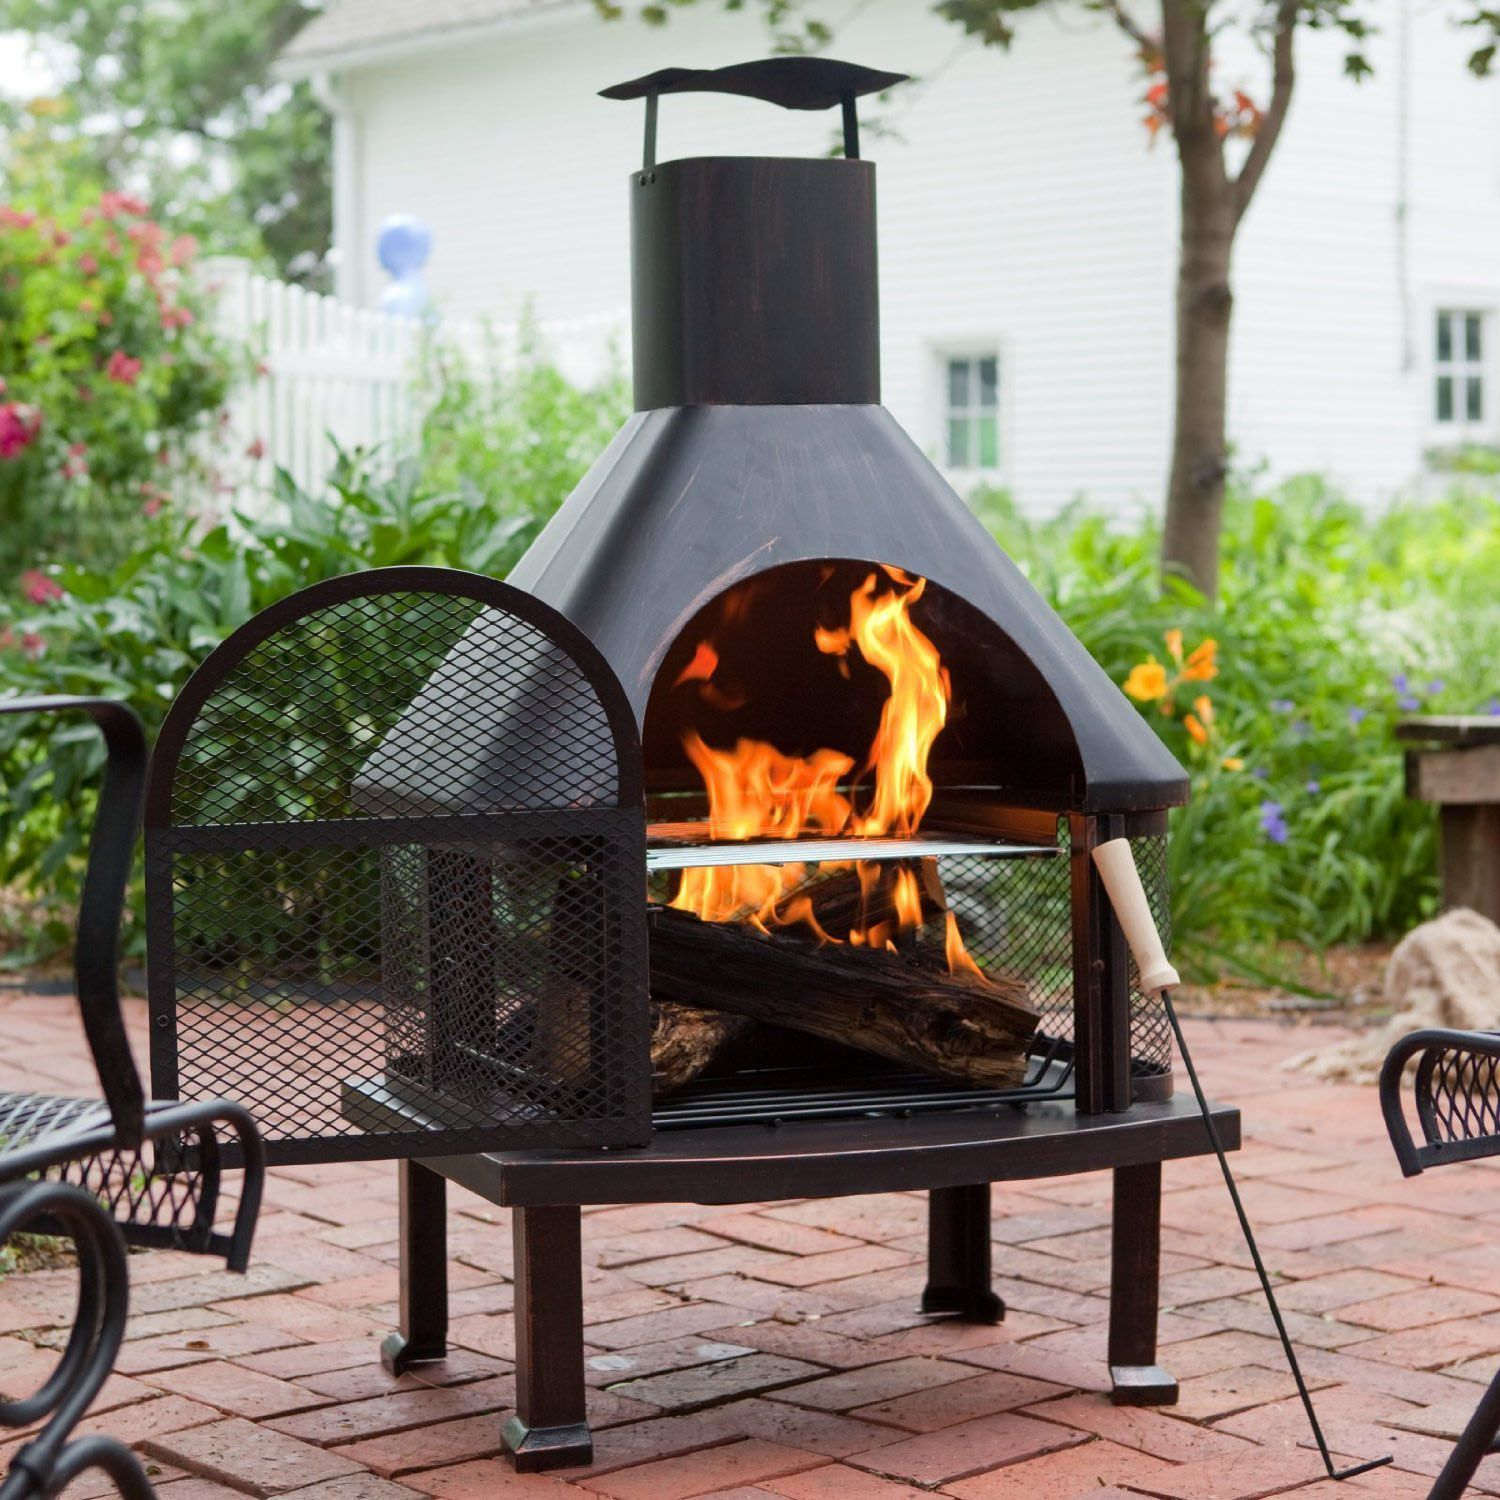 Image Result For Outdoor Fire Pit With Flue Fire Pit Chimney